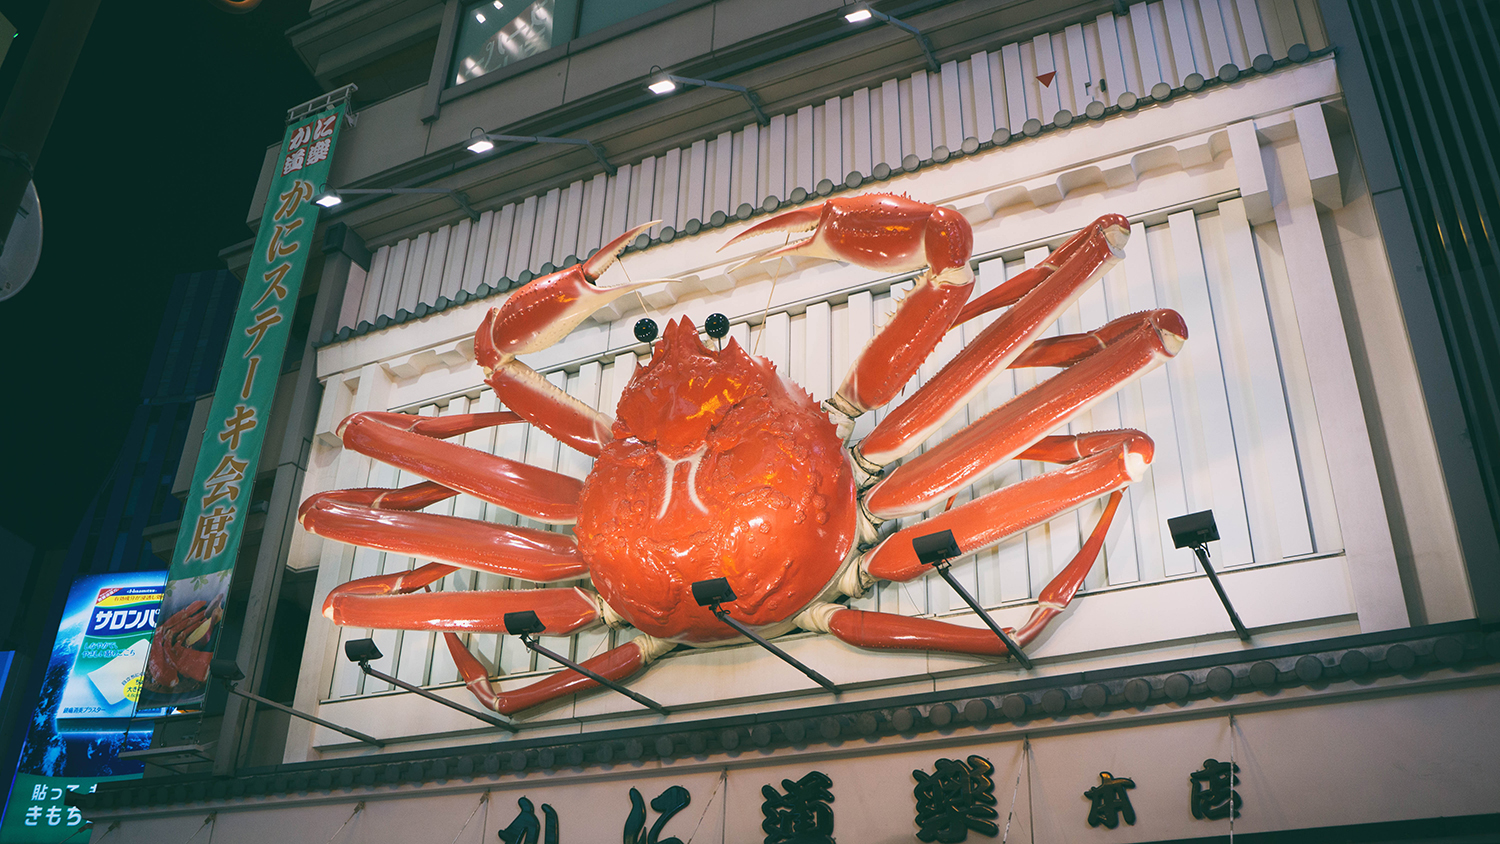 The famous Dotonbori crab.